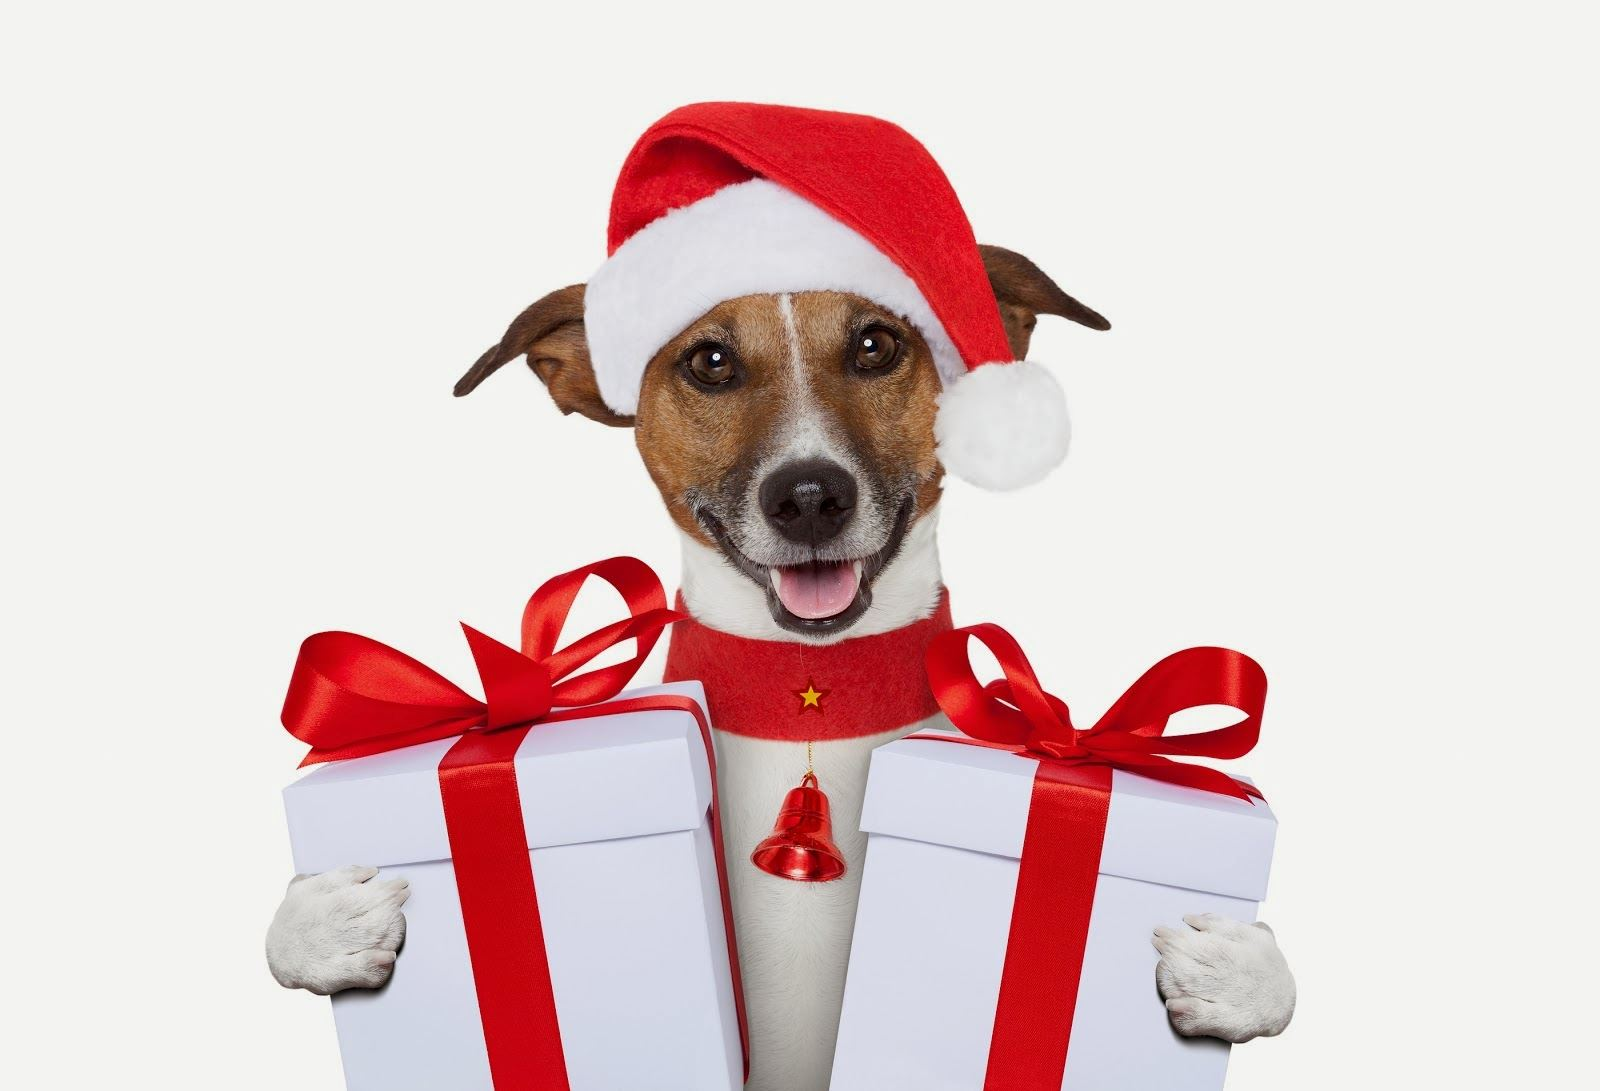 Dog-Christmas-gift-wallpapers132014